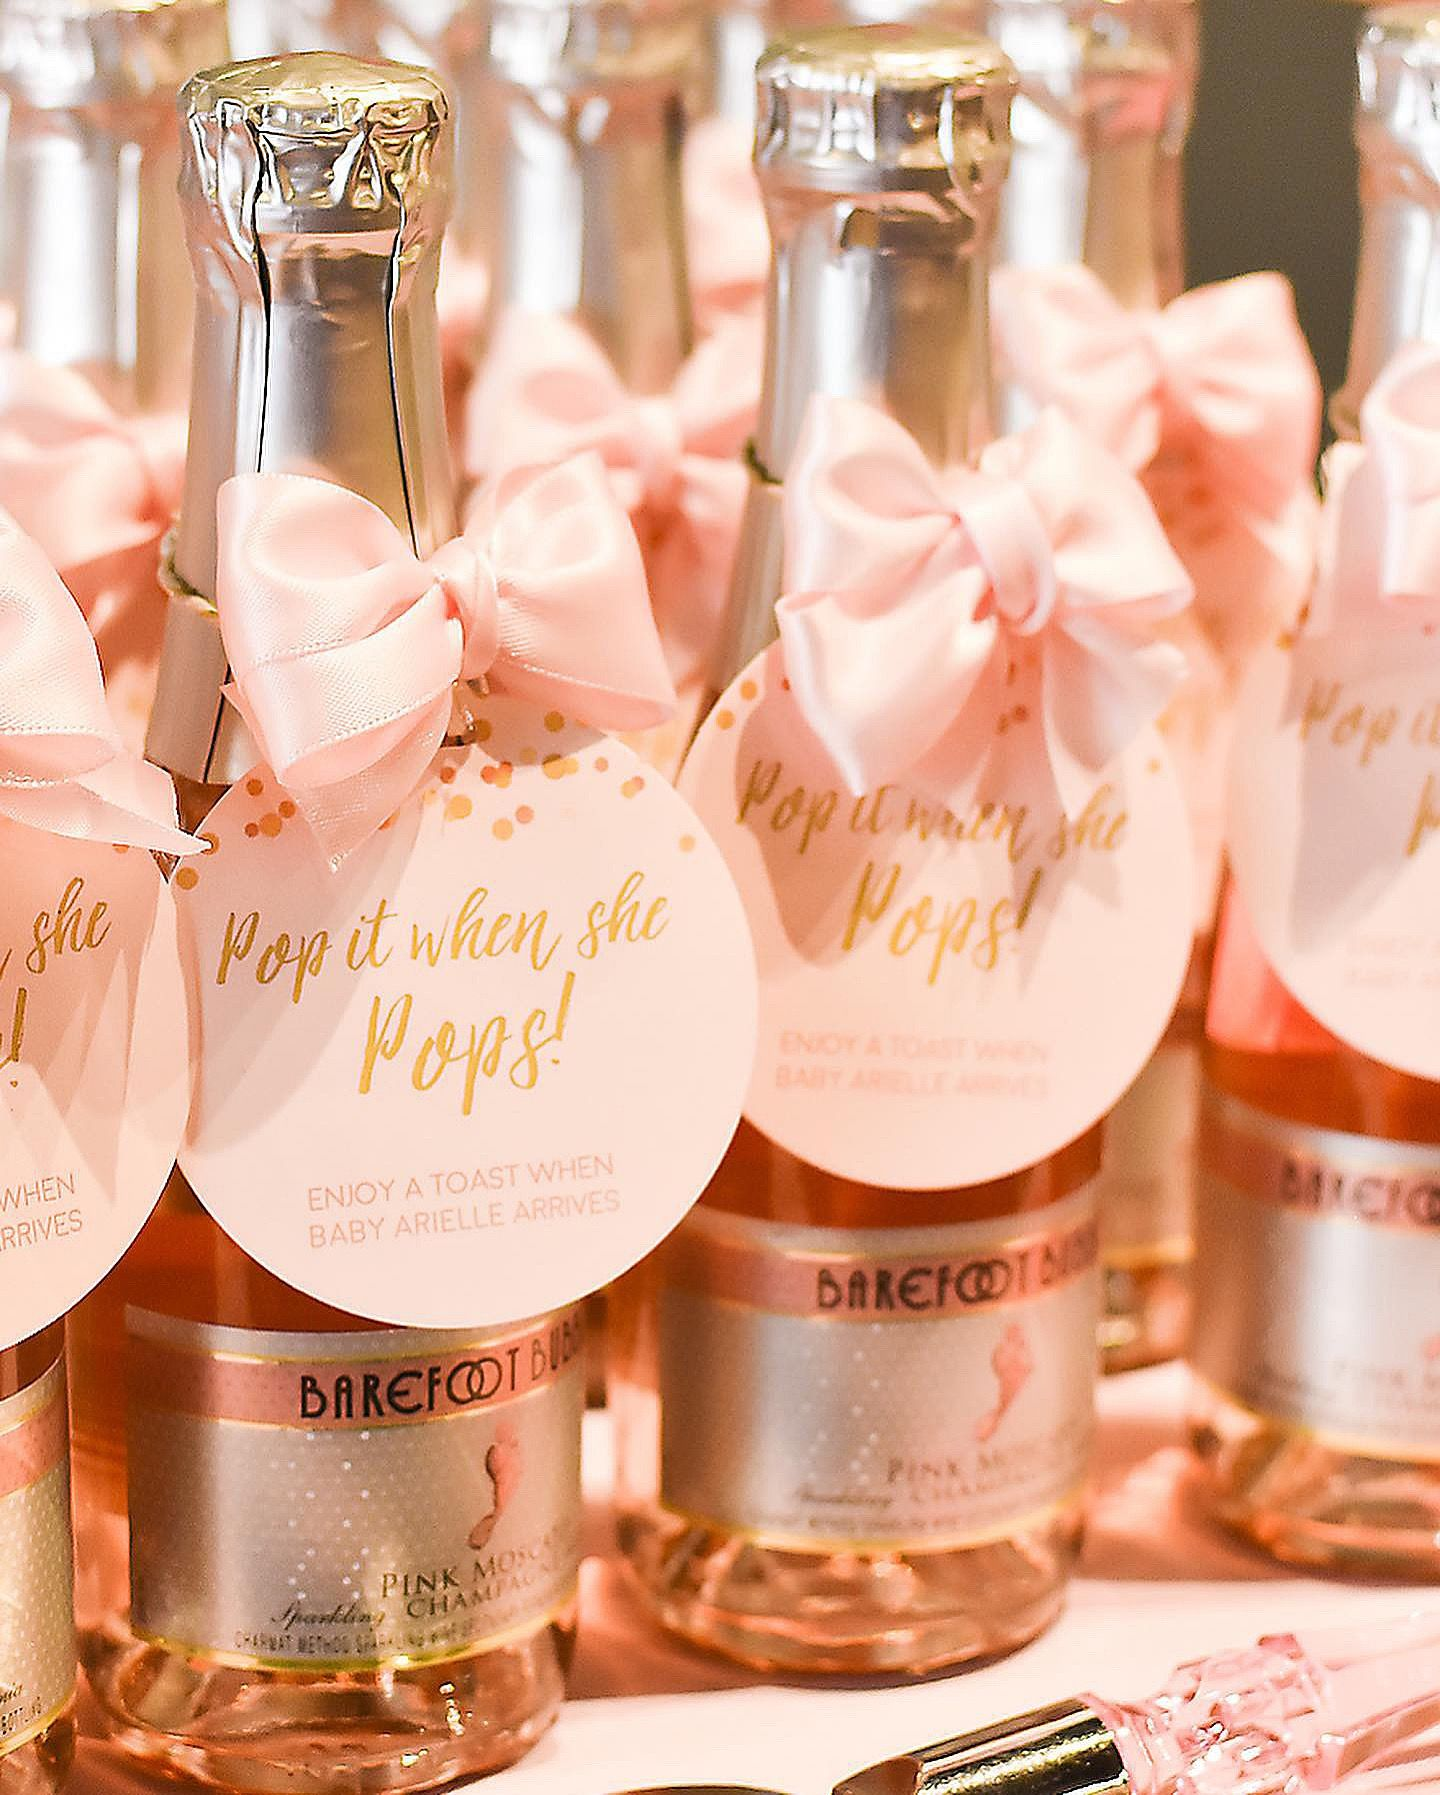 Blue Gold 2x3 Inches Personalized Cheers Mini Champagne Tags DIGITAL PRINTABLE FILES Baby Arrival Favor Tags for Baby Shower